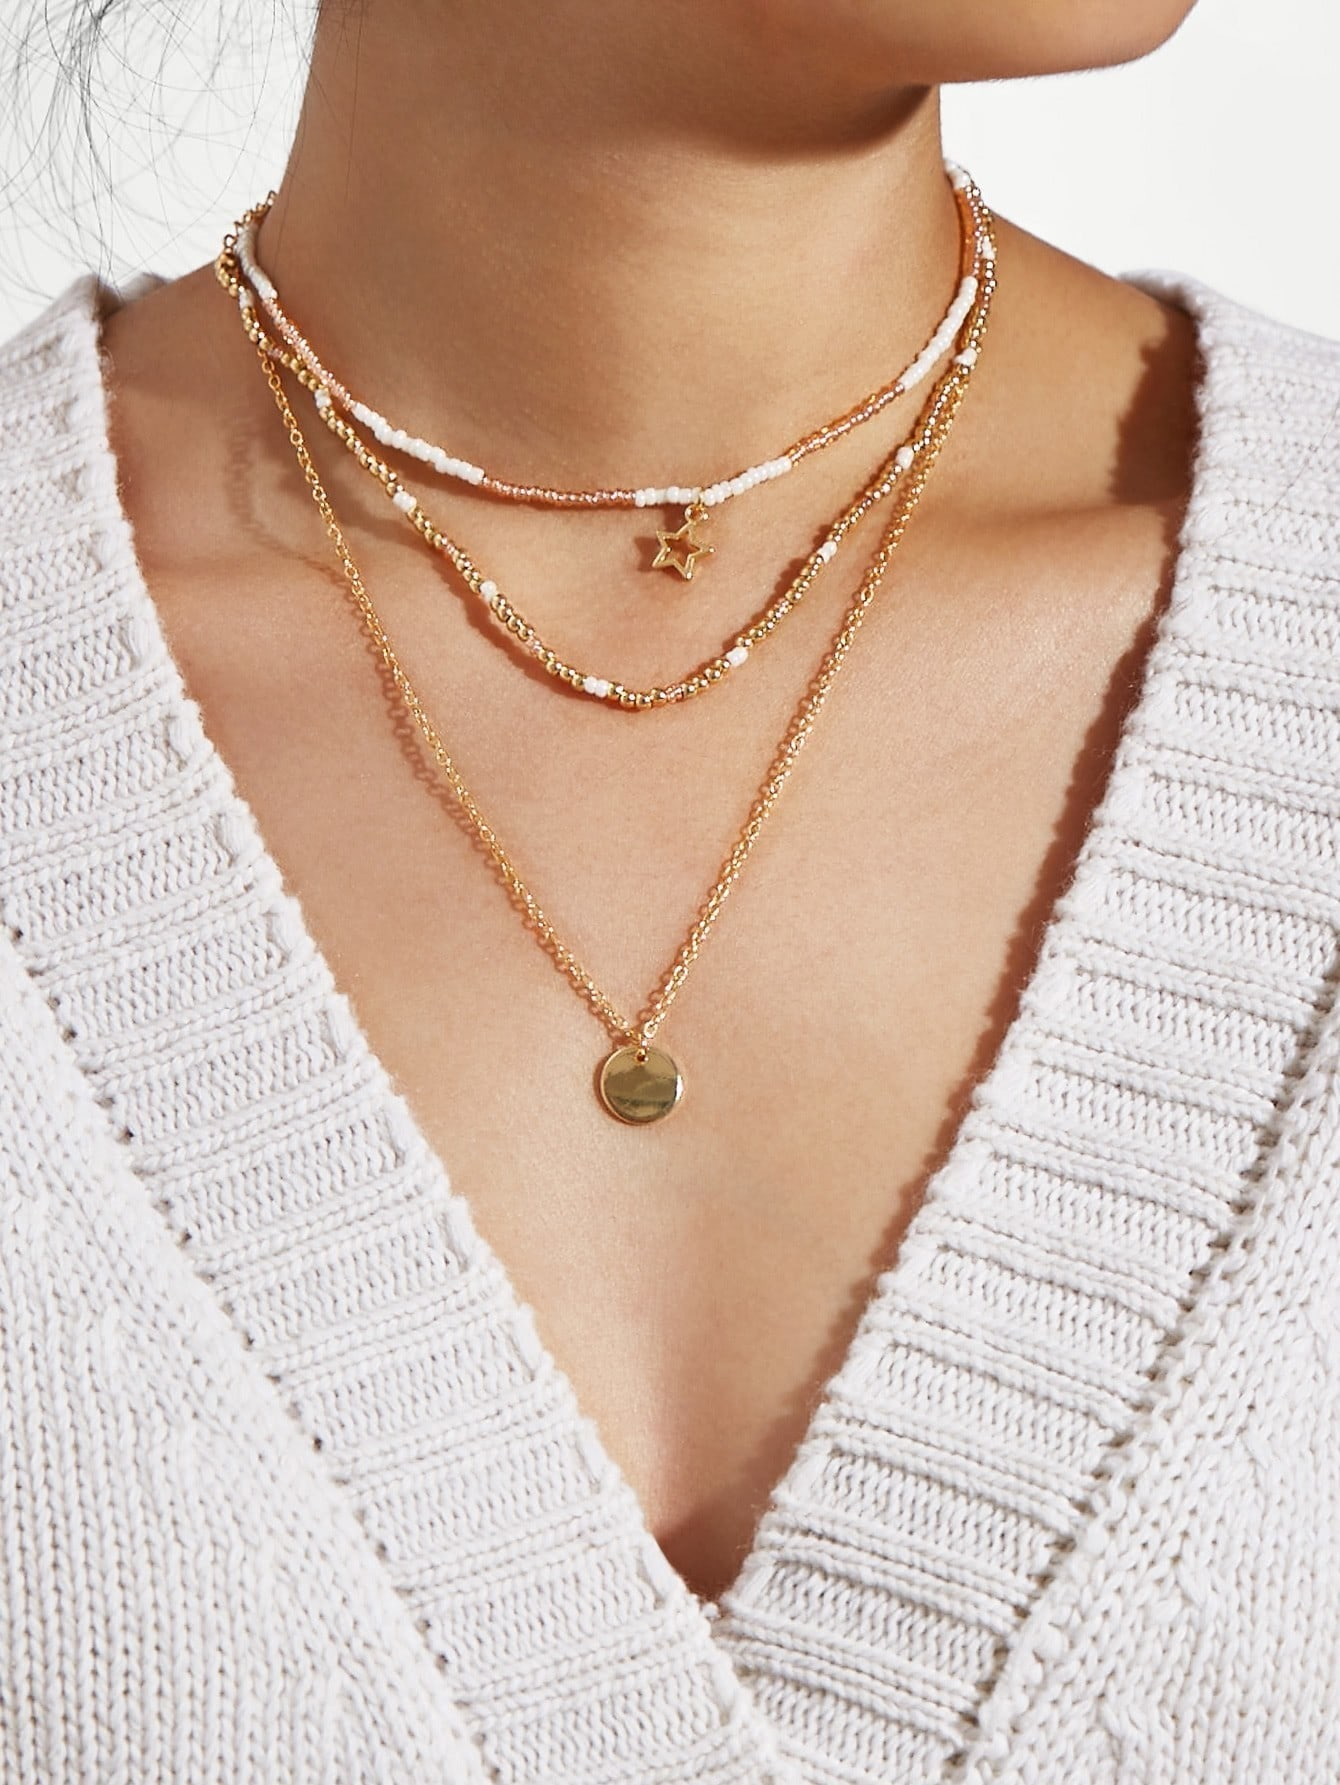 Sequin & Star Layered Chain Necklace Set